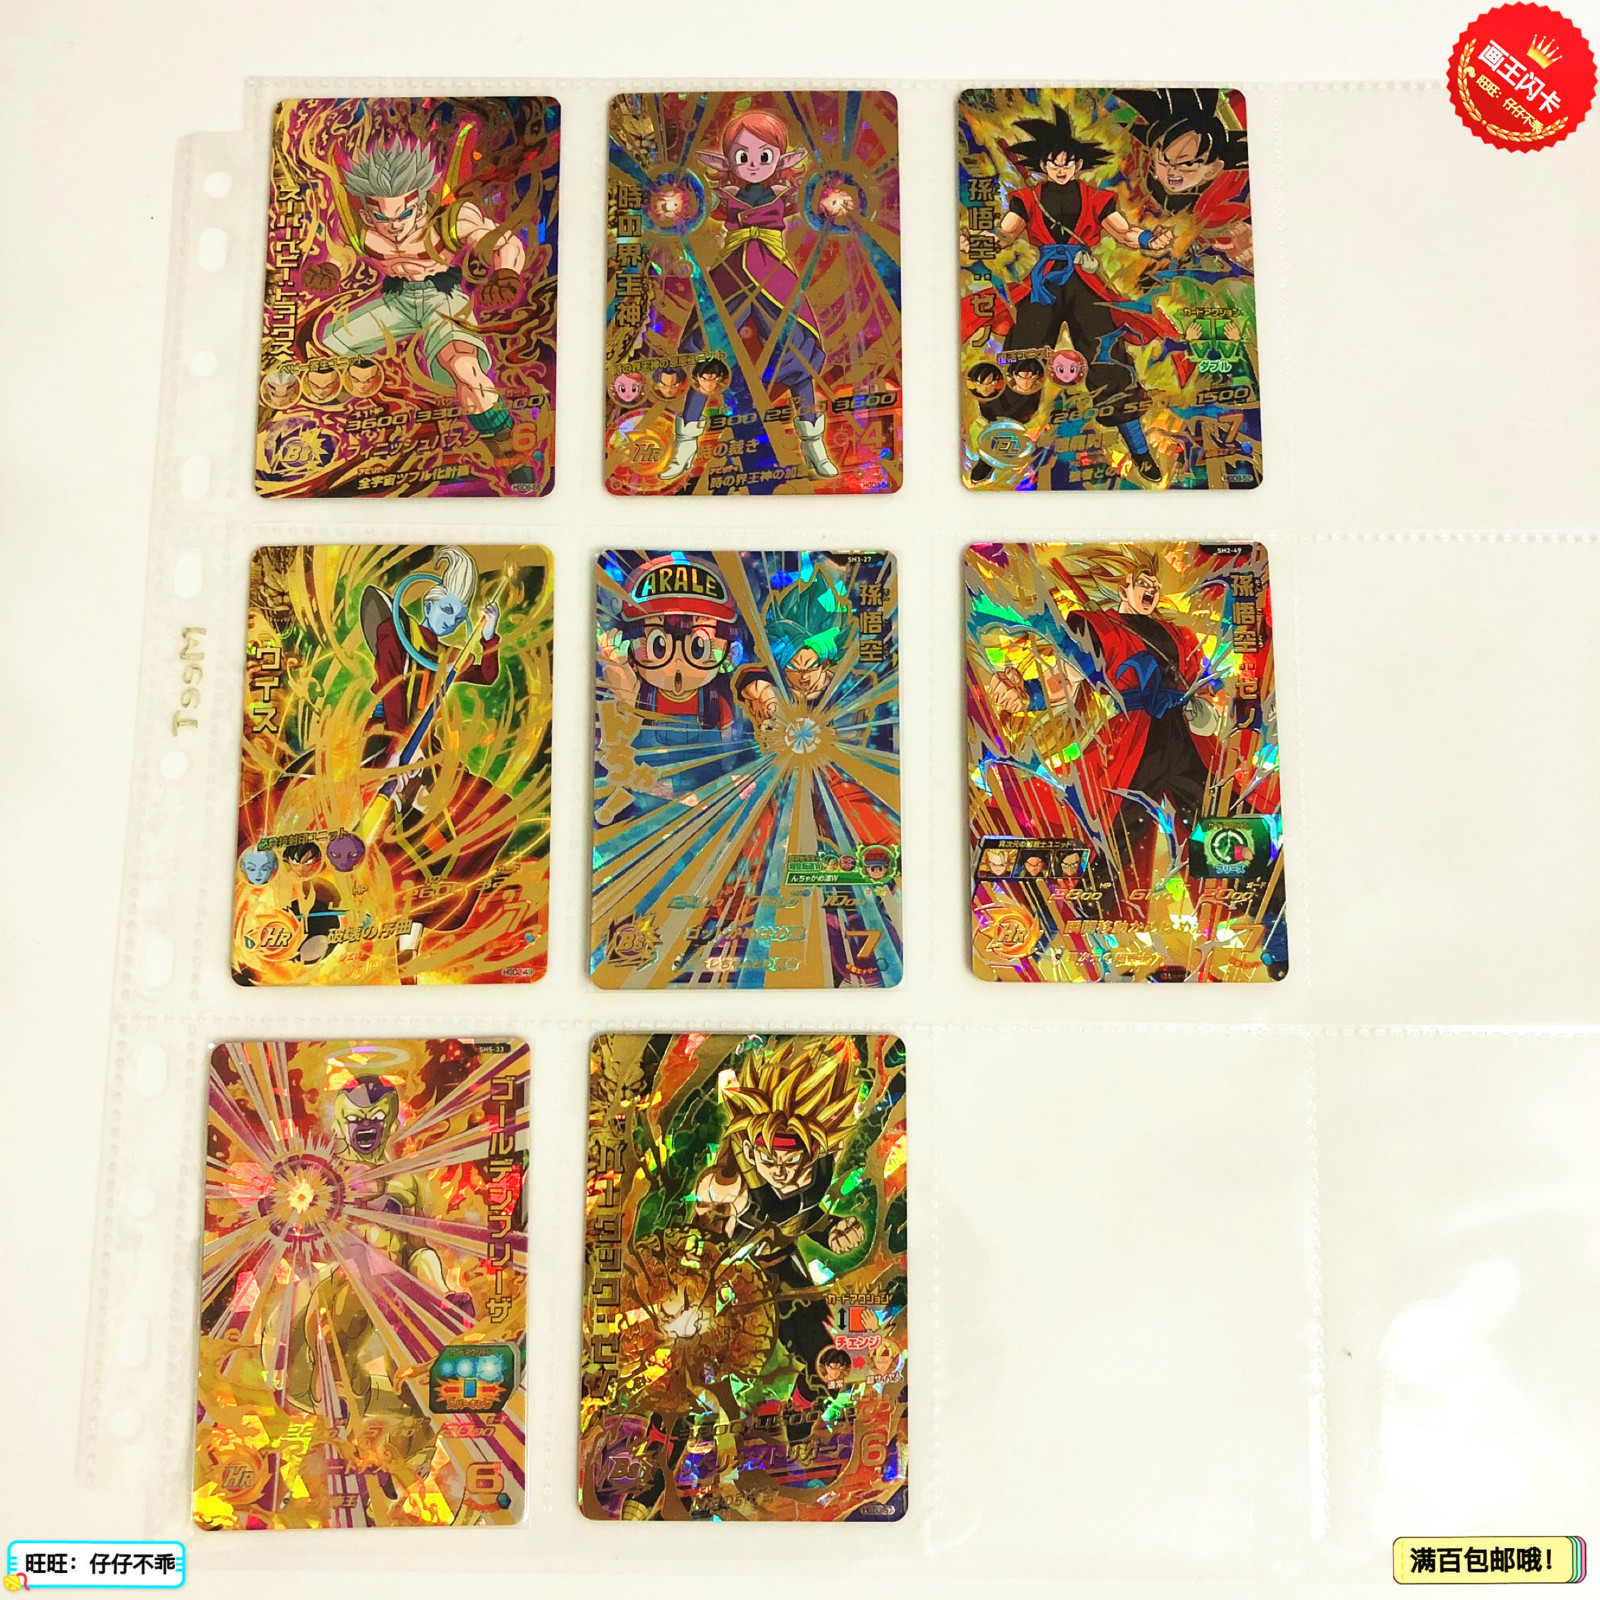 Japan Original Dragon Ball Hero Card SEC 4 Stars UR Goku Toys Hobbies Collectibles Game Collection Anime Cards